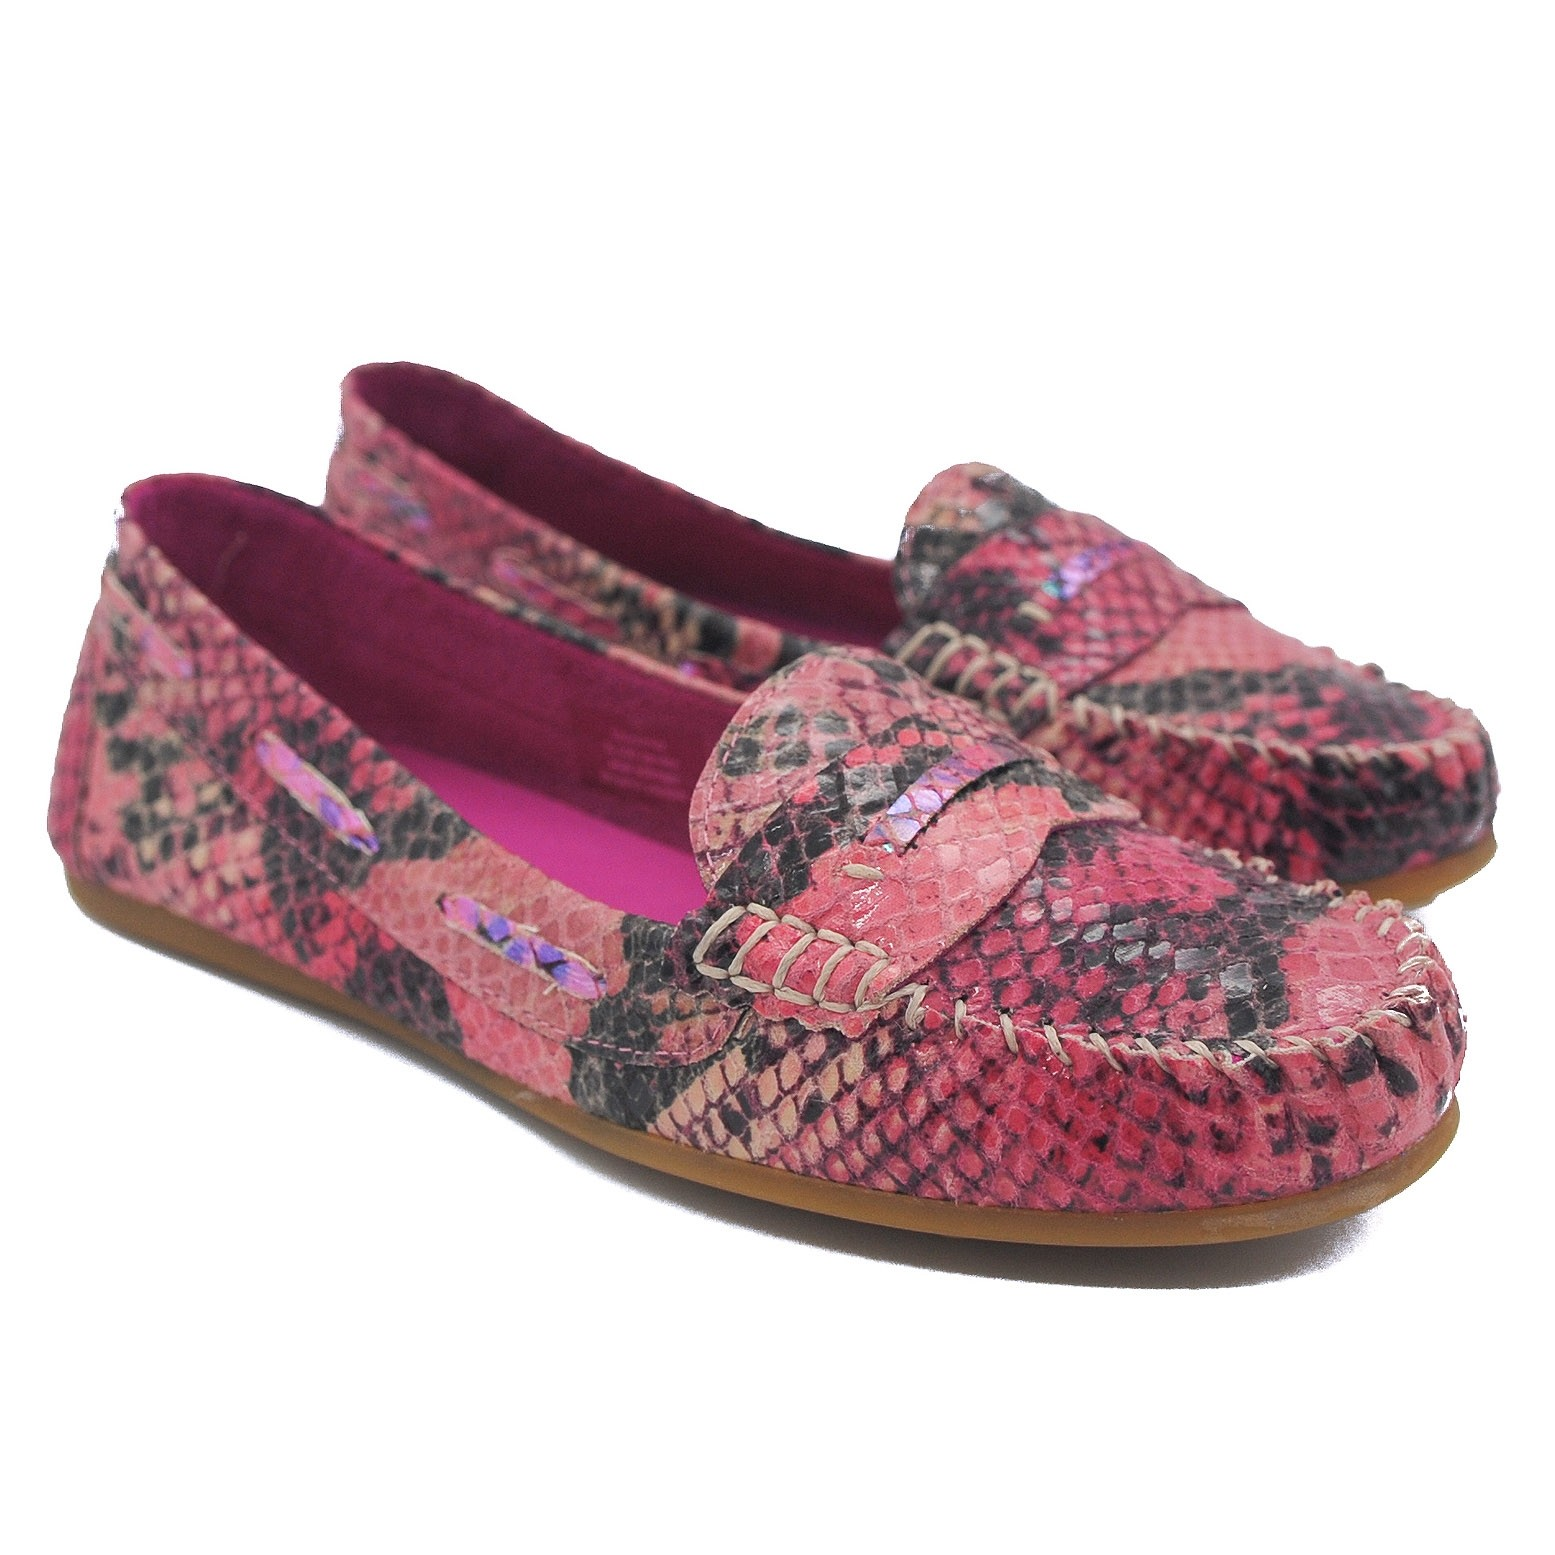 Goody2Shoes Ladies Hot Pink Faux Snakeskin Moccasins